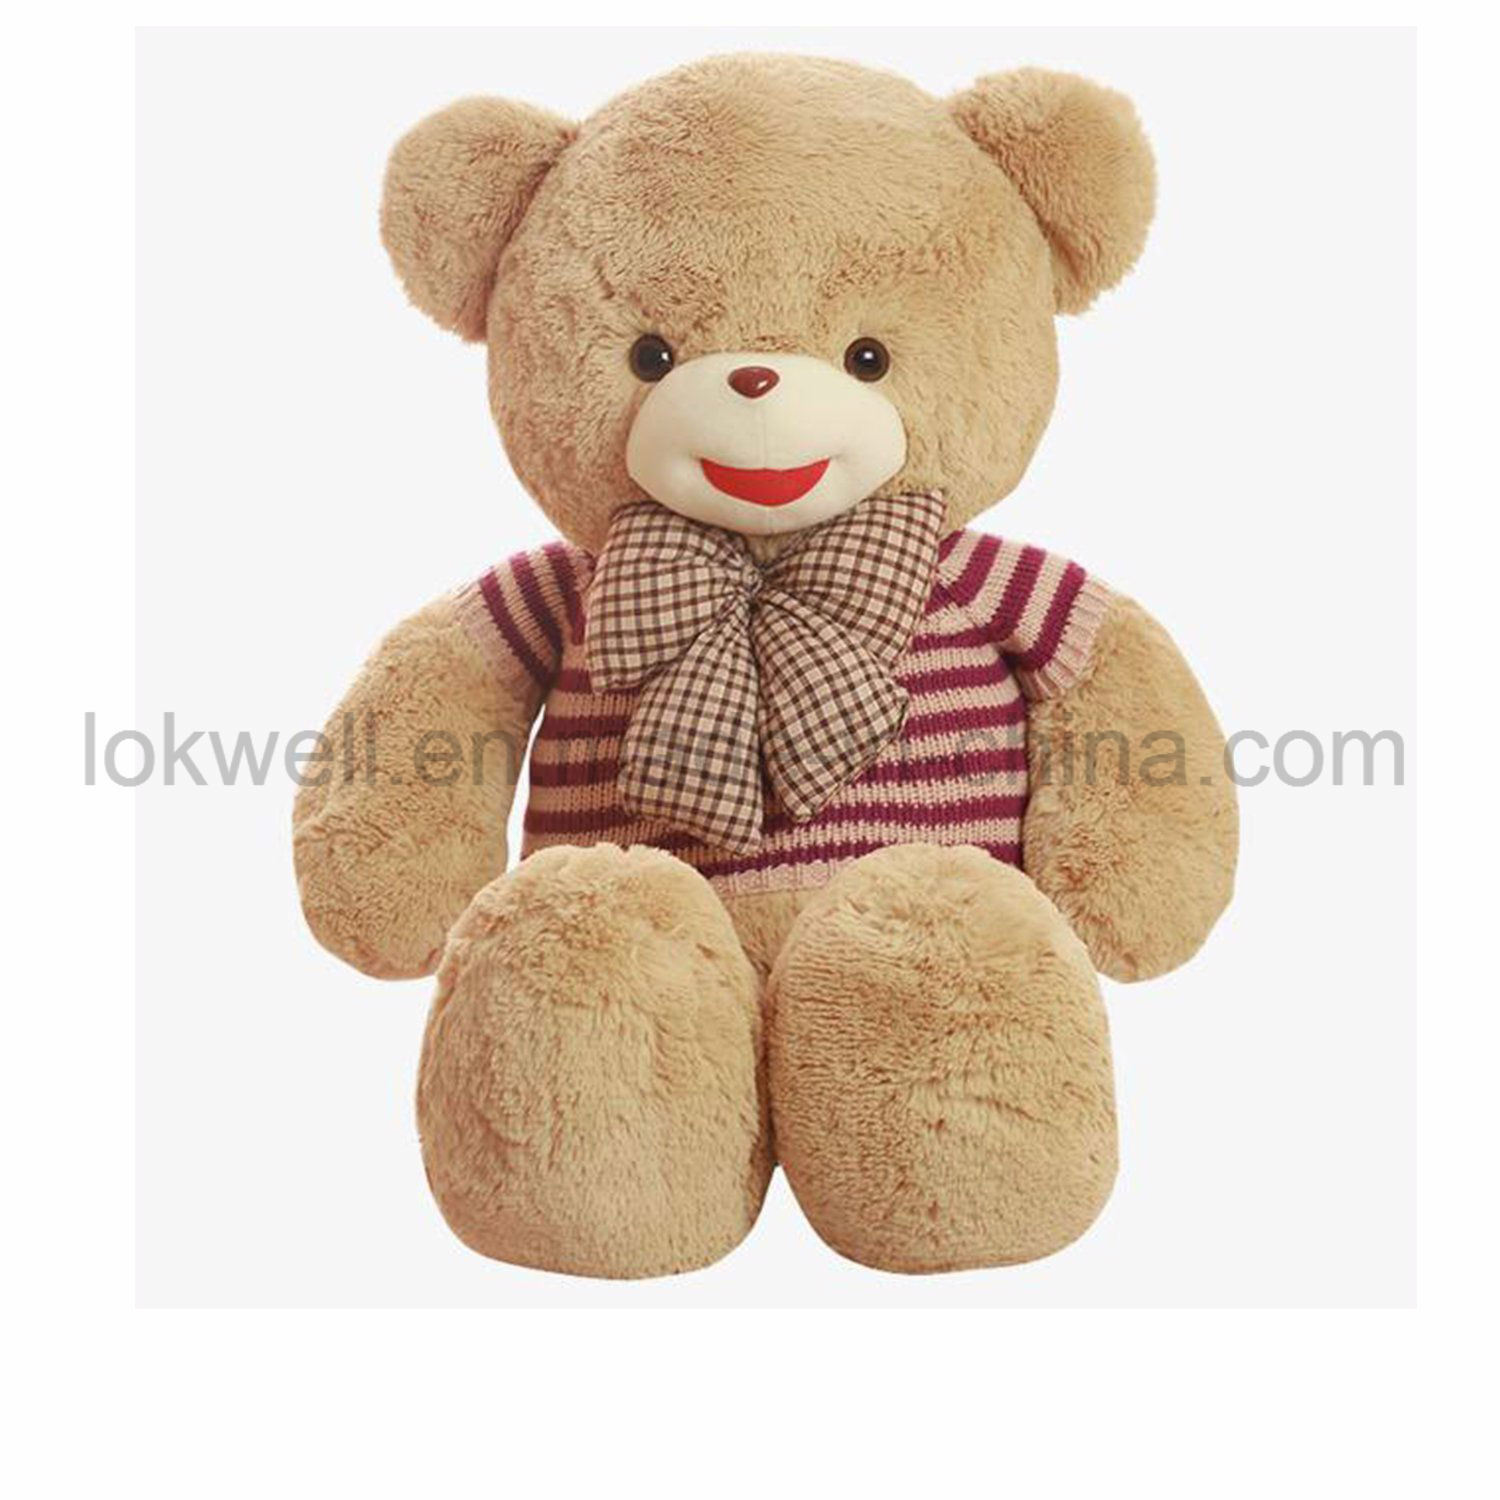 9d100870c40 China OEM Plush Toy Factory Custom Made Logo Teddy Bear Photos ...